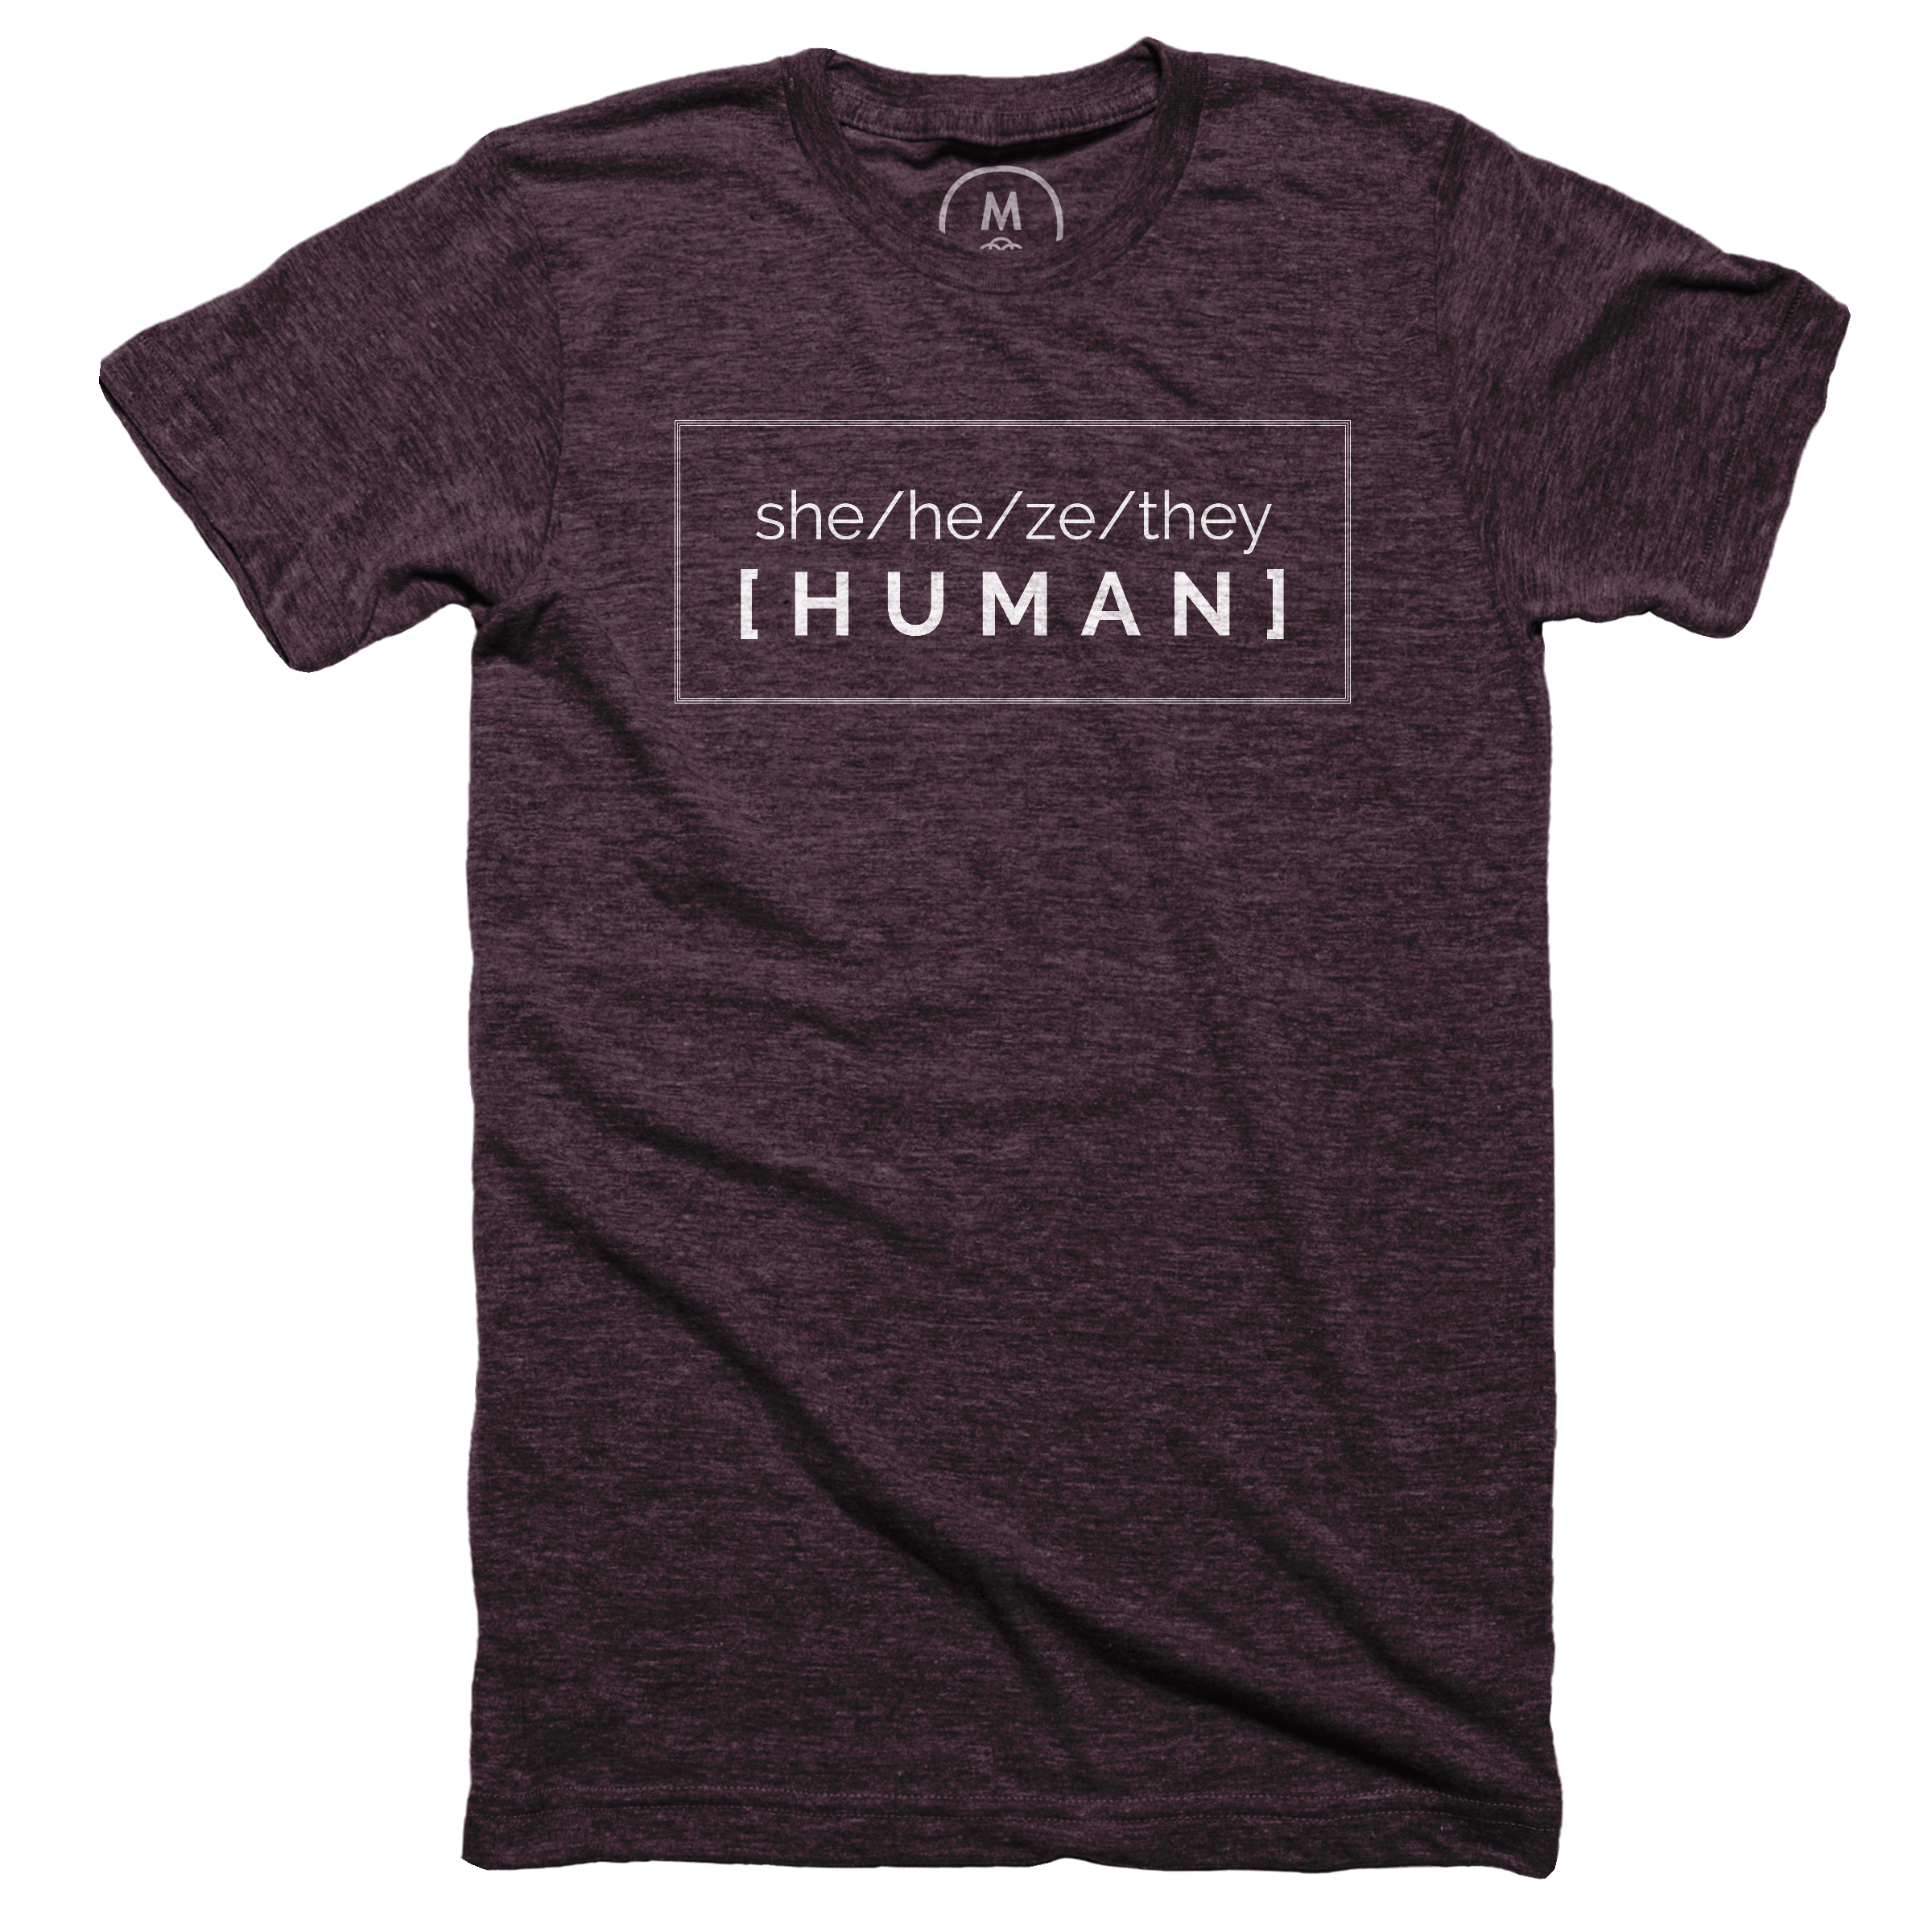 Pronounced Human